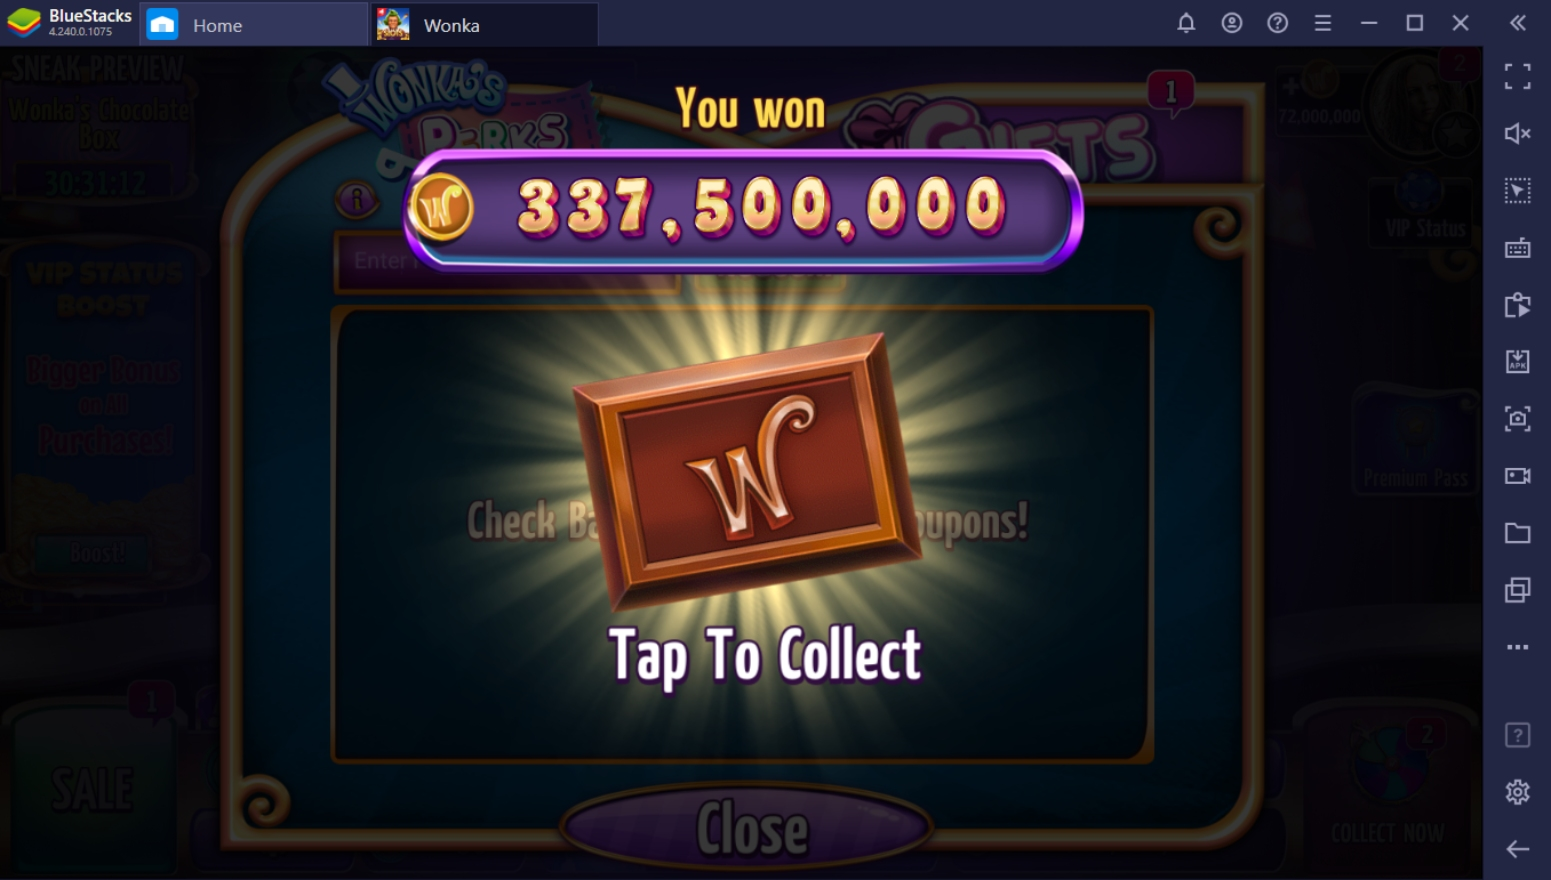 How To Get Free Credits In Willy Wonka Casino on PC